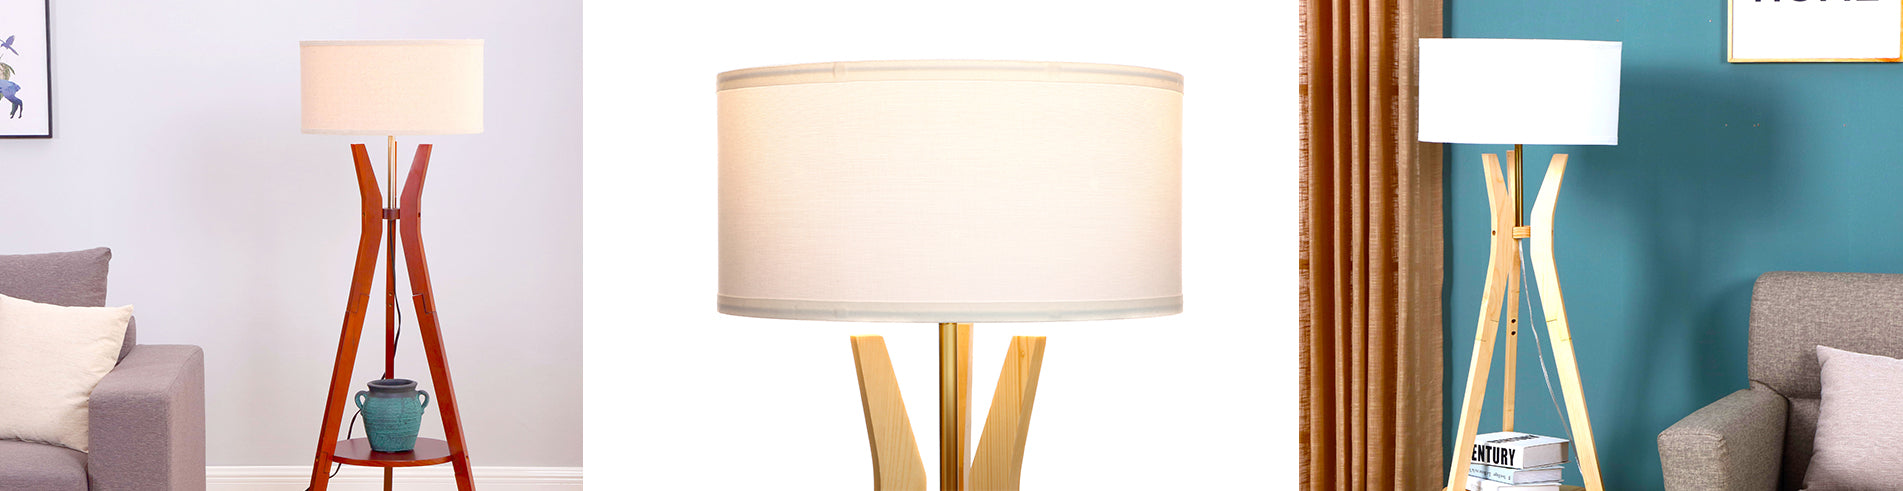 The Charlotte LED Tripod Floor Lamp fits in beautifully amid mid century modern architecture and décor. The gently curving leg design creates a sculpted look that makes it a great conversation piece, and the built-in wooden shelf works perfectly as a display or end table next to your couch or armchair.